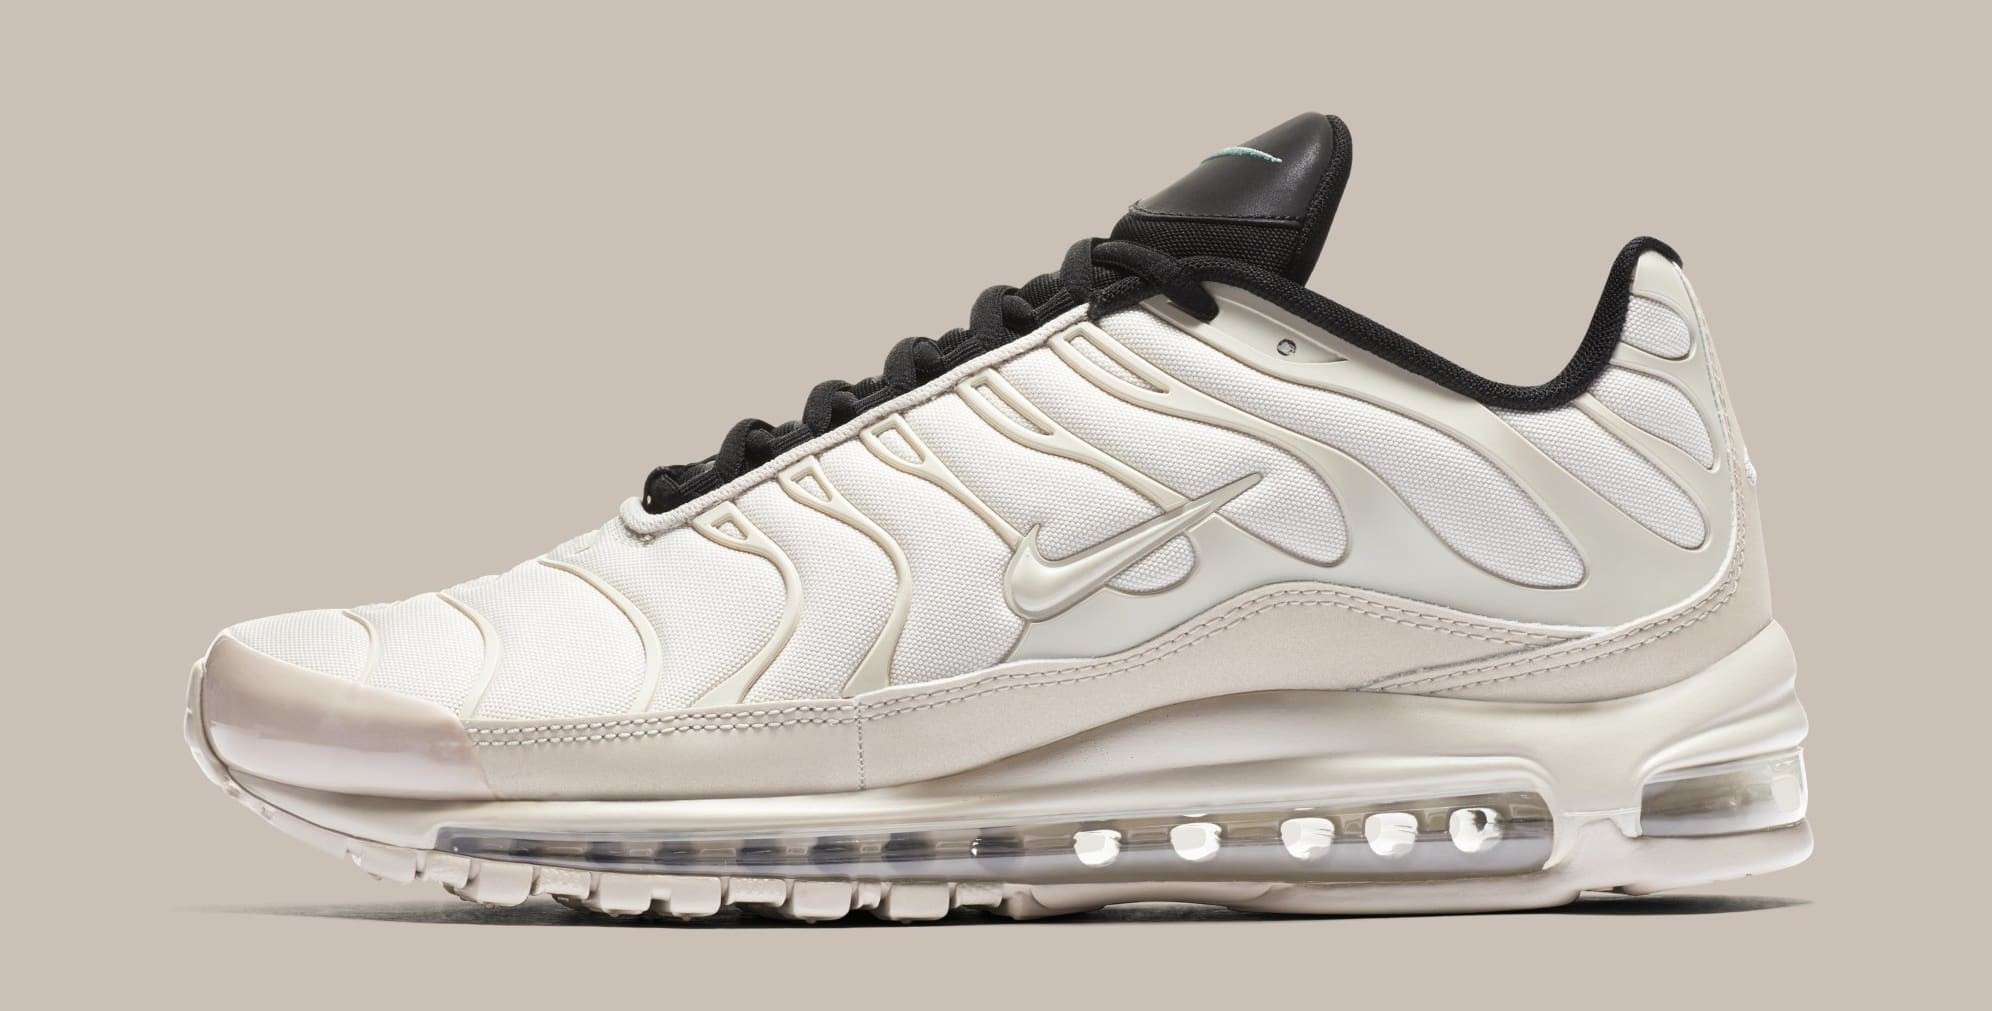 timeless design 2efe8 2a1e6 ... coupon code for nike air max 97 plus light orewood brown ah8144 101  lateral 11ddd be30a